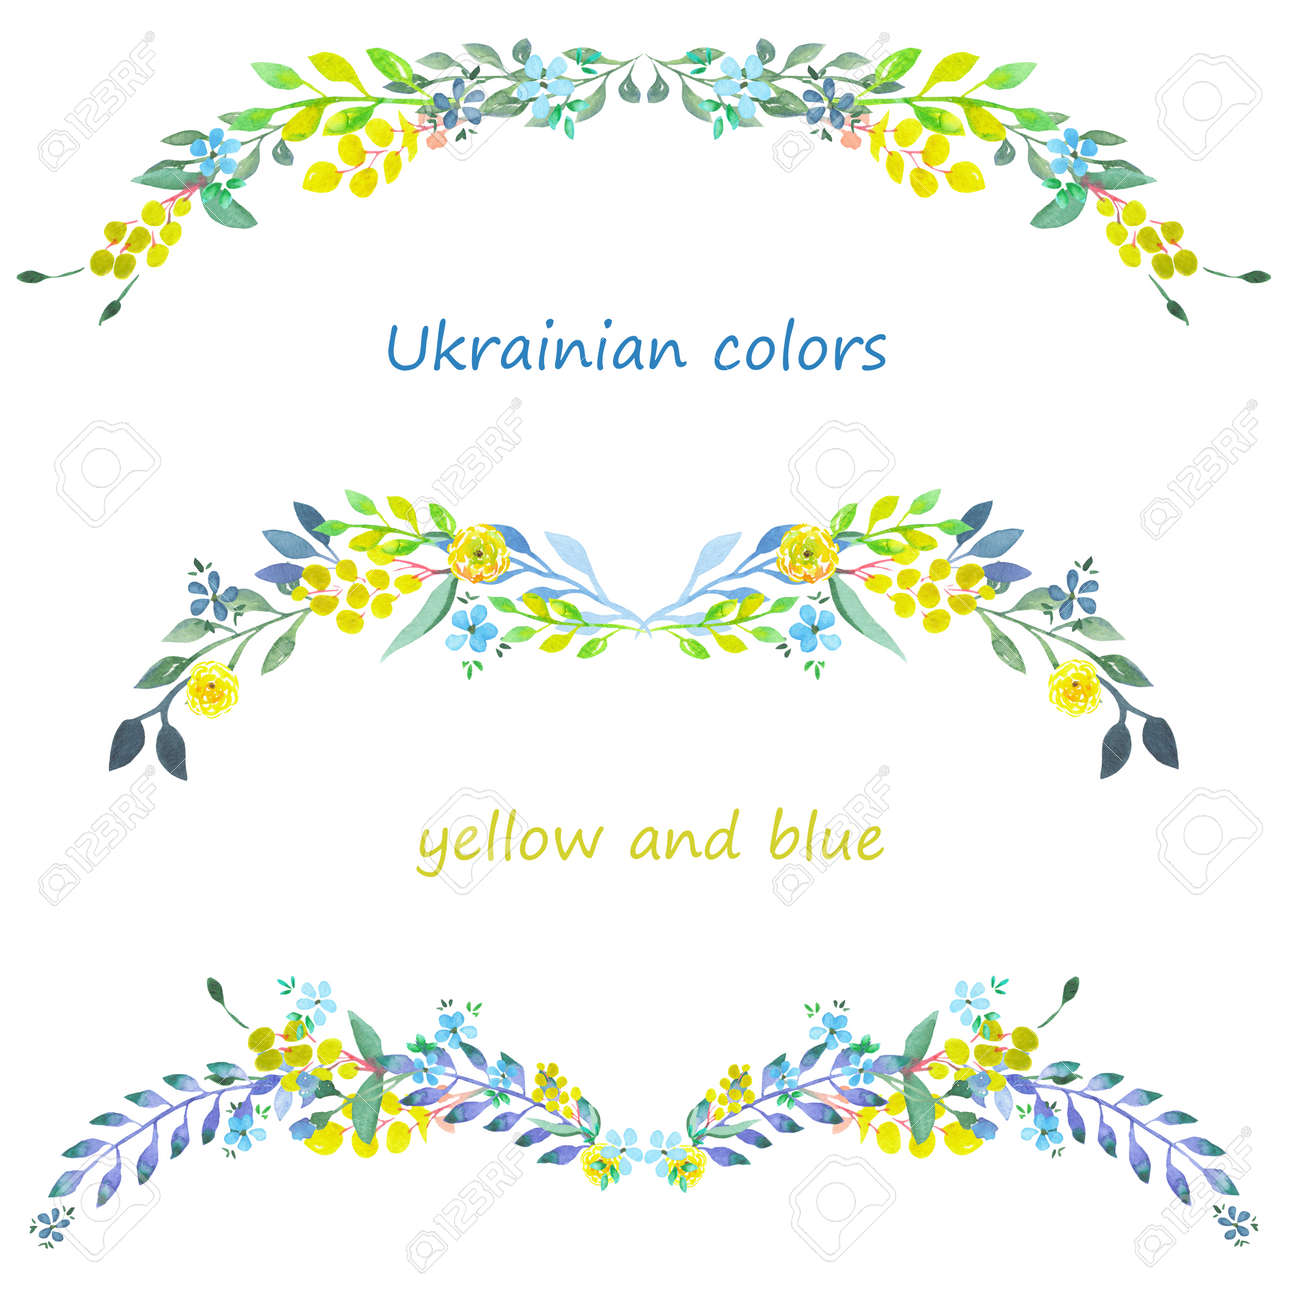 Frame Border Floral Decorative Ornament With Blue And Yellow